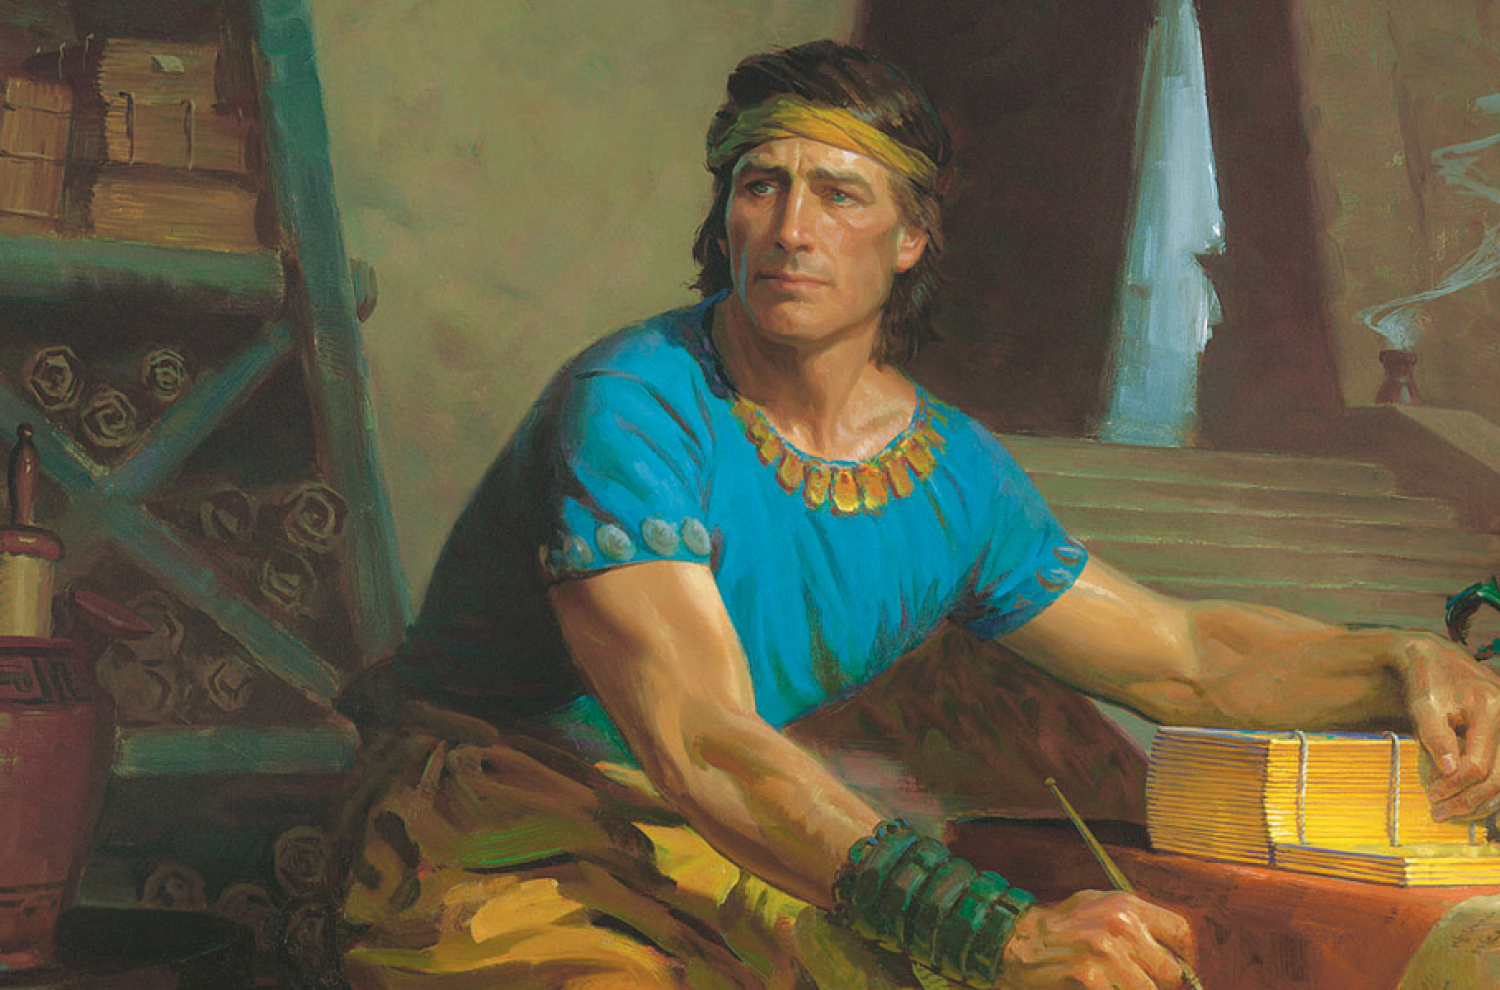 Mormon Abridging the Plates by Tom Lovell. Image via LDS Media Library